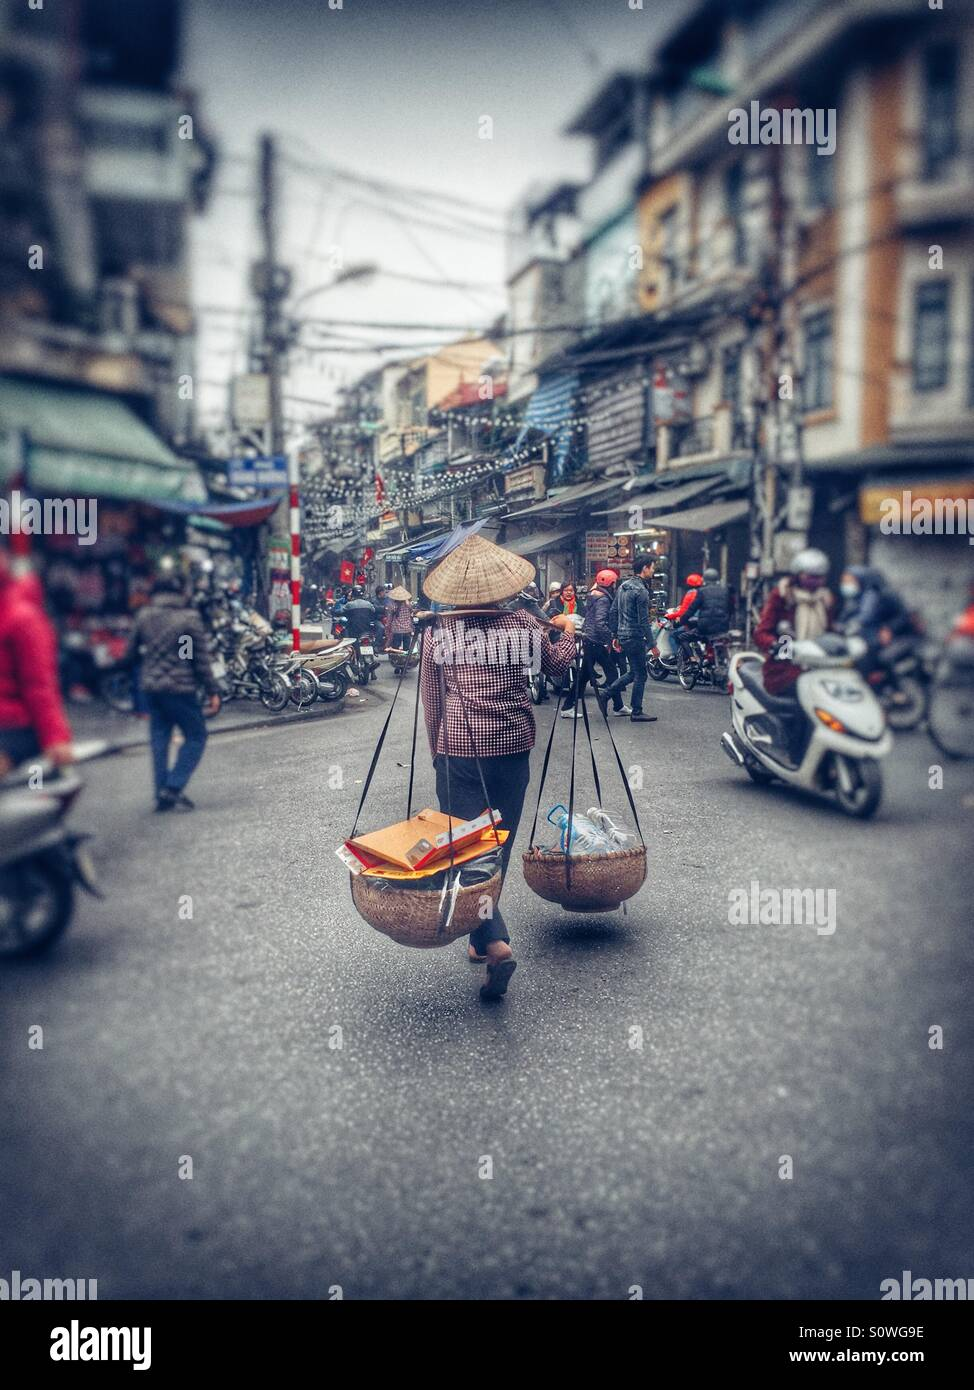 Vietnam street Stock Photo